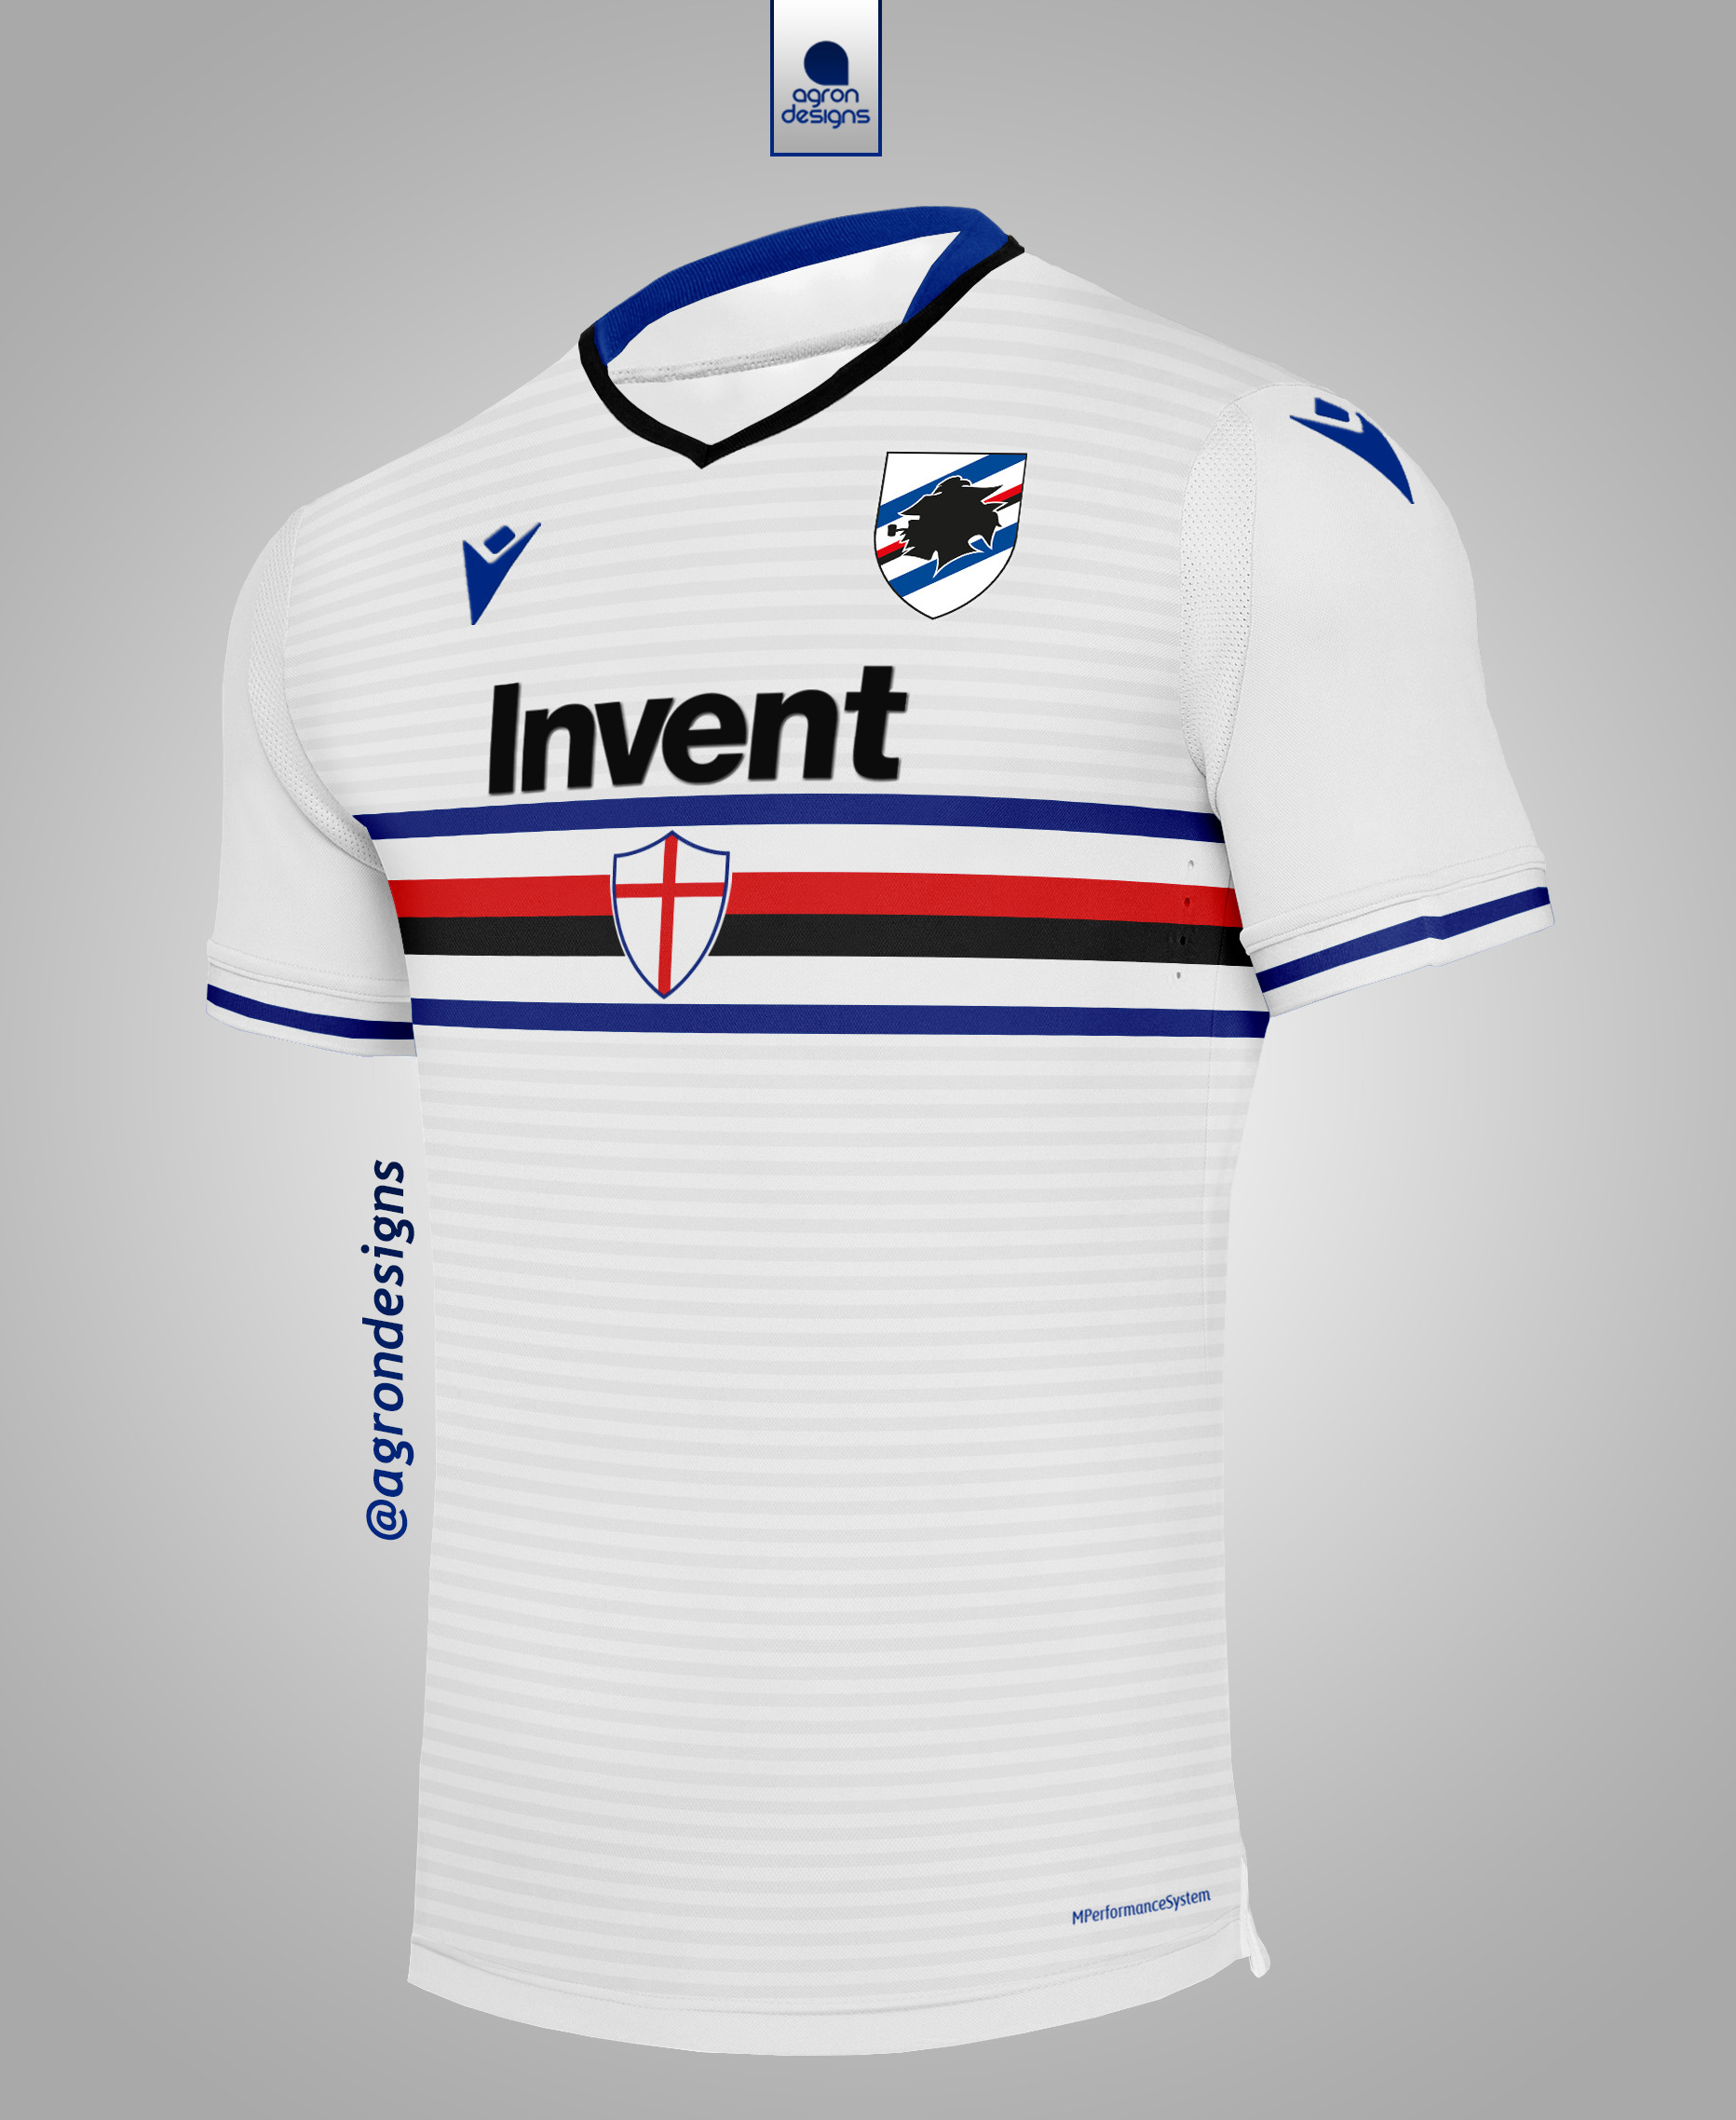 Macron Sampdoria 2020 21 Away Kit Concept